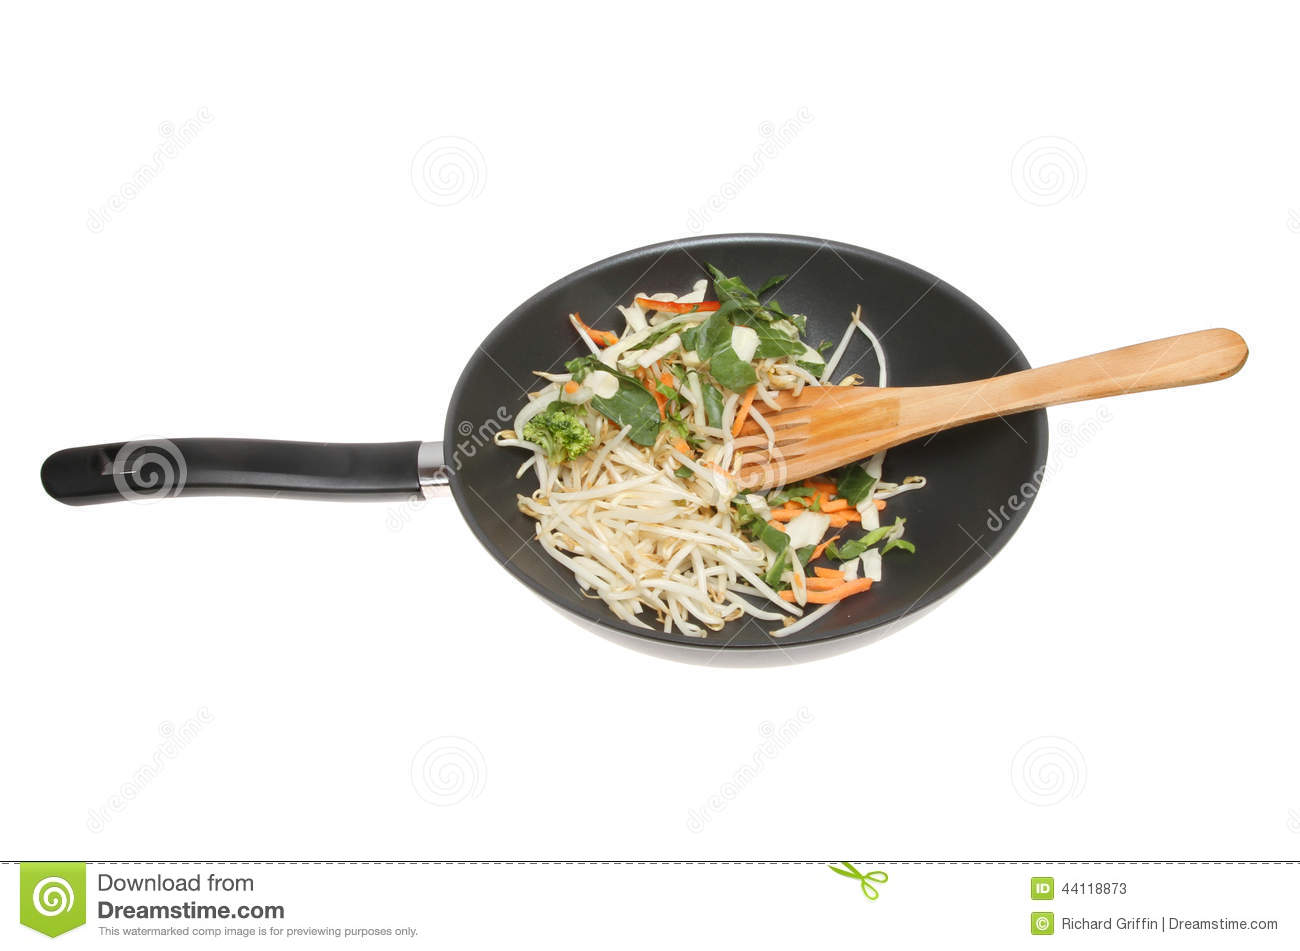 Stir fry vegetables in a wok